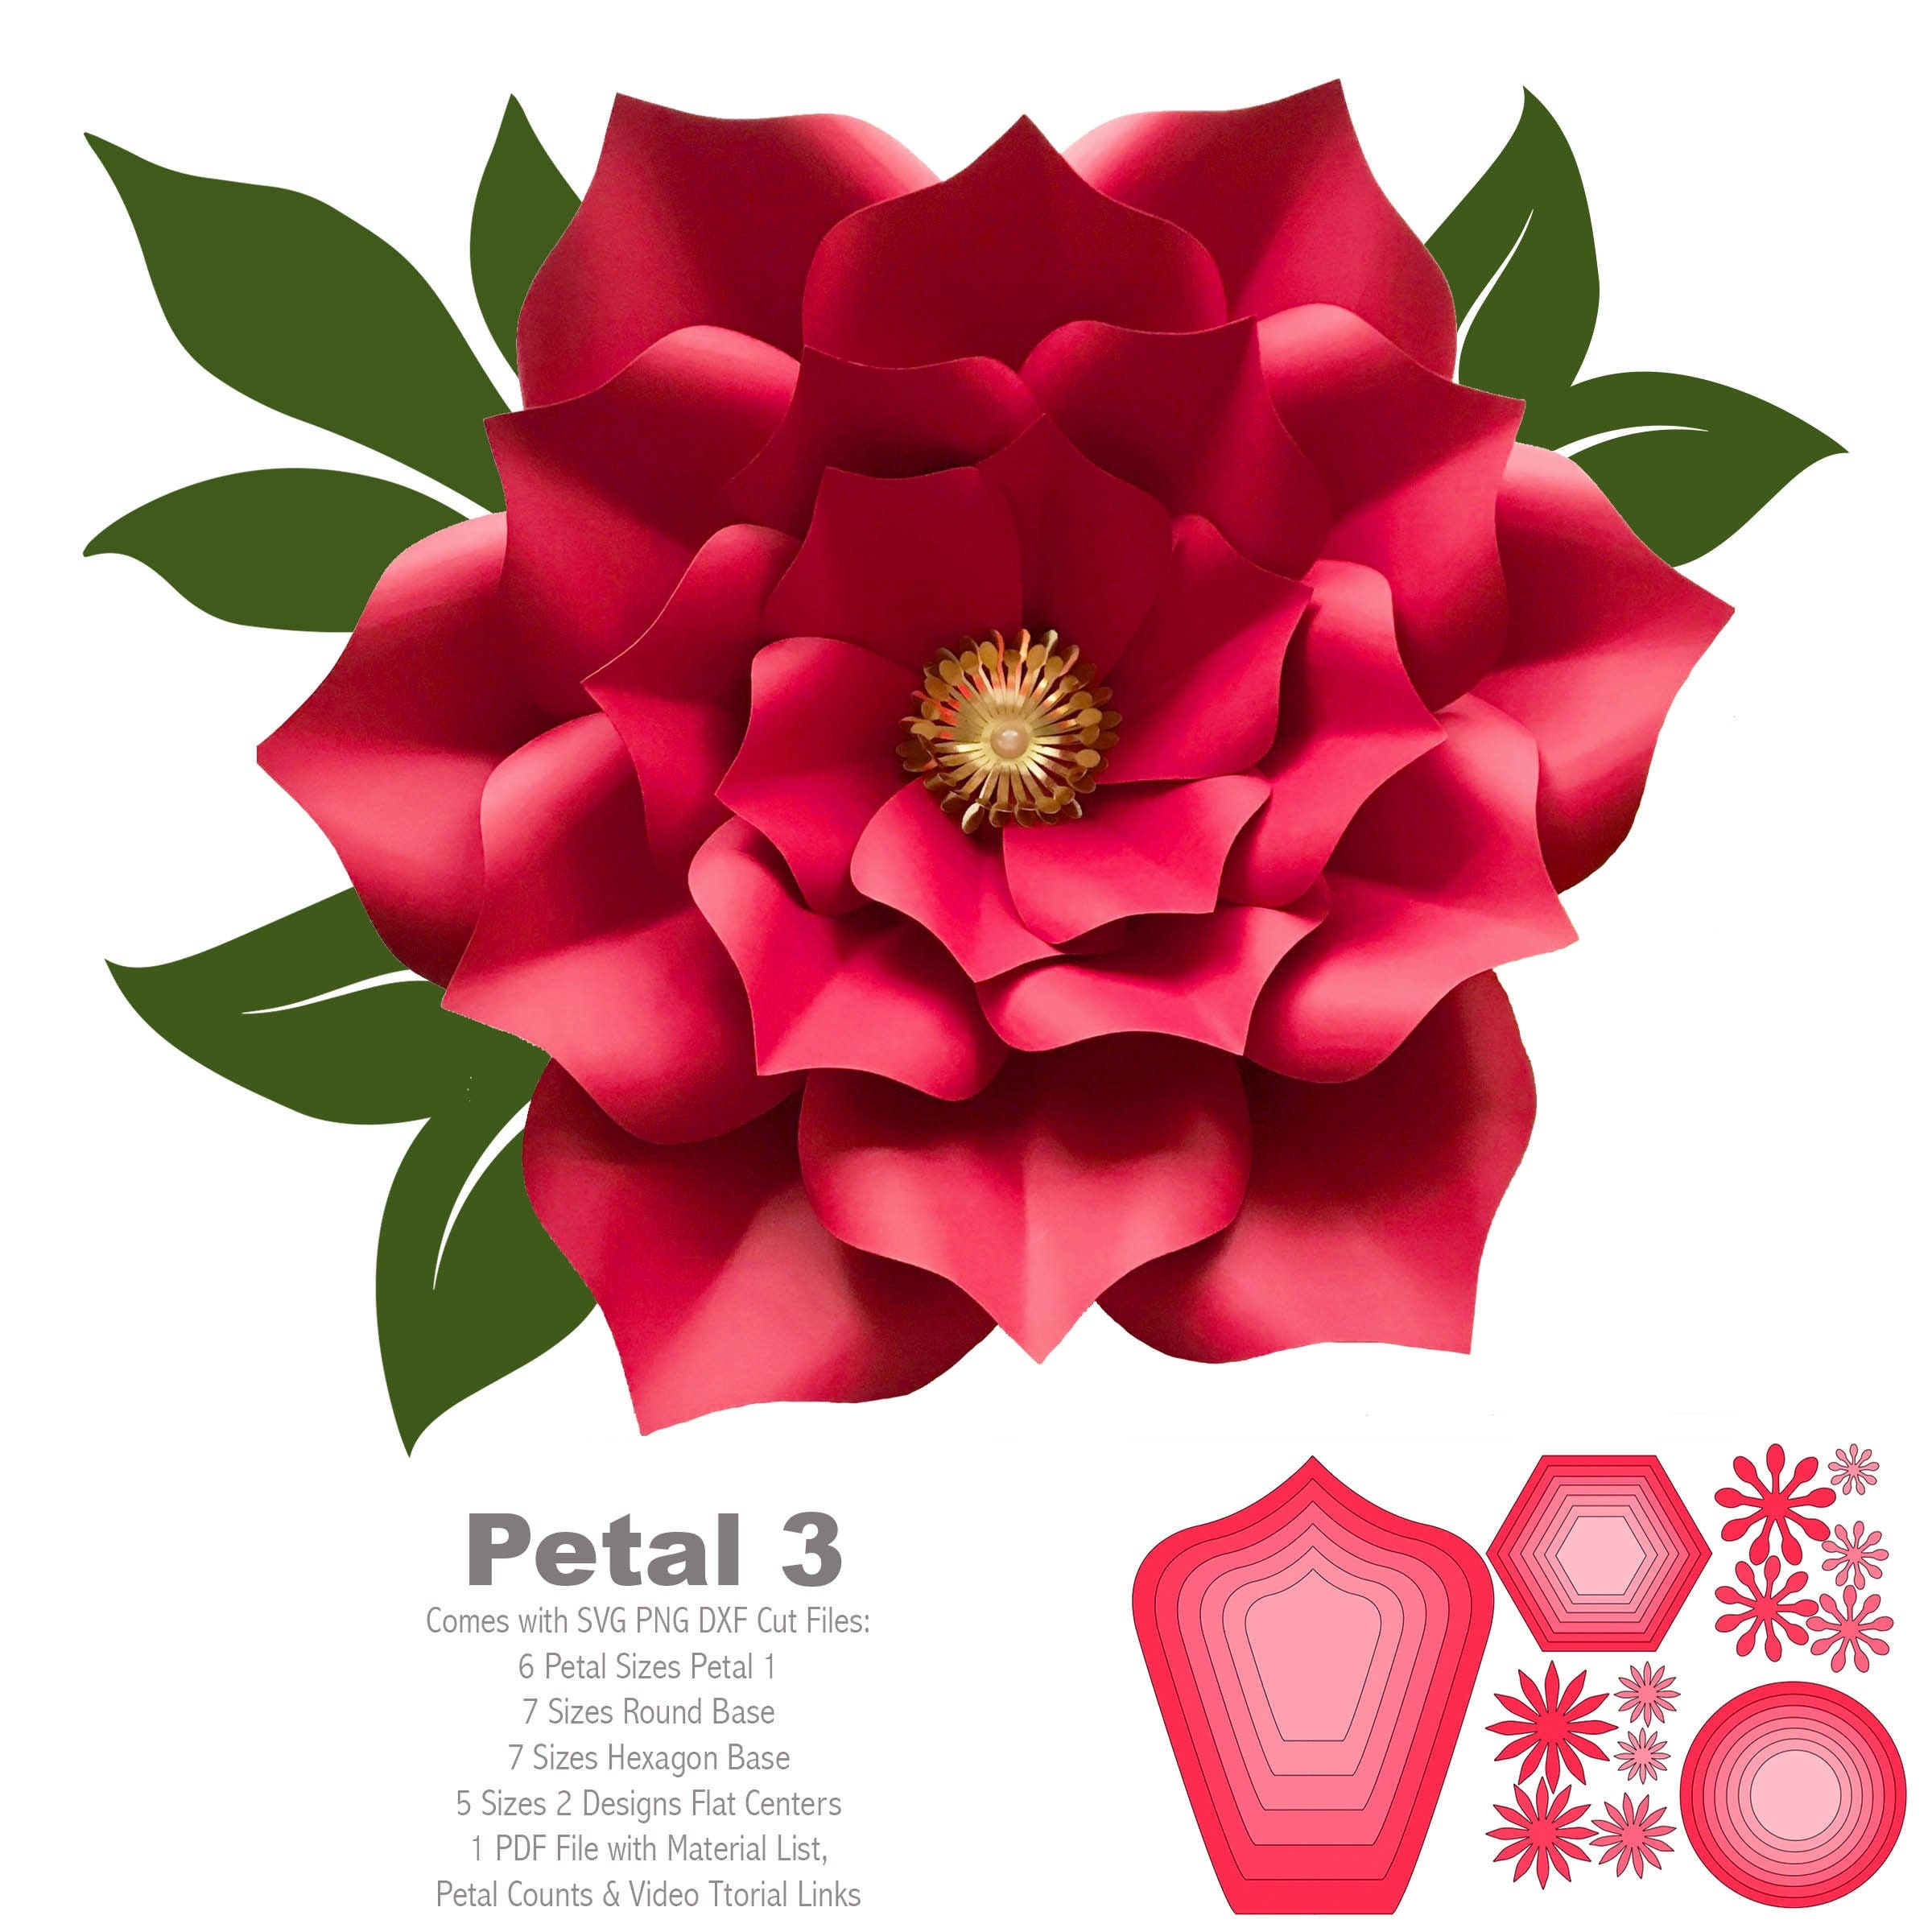 Svg Png Dxf Petal 3 Cut Files Paper Flowers Template For Cutting Machine No Resizing Needed Free Bases And Flat Centers